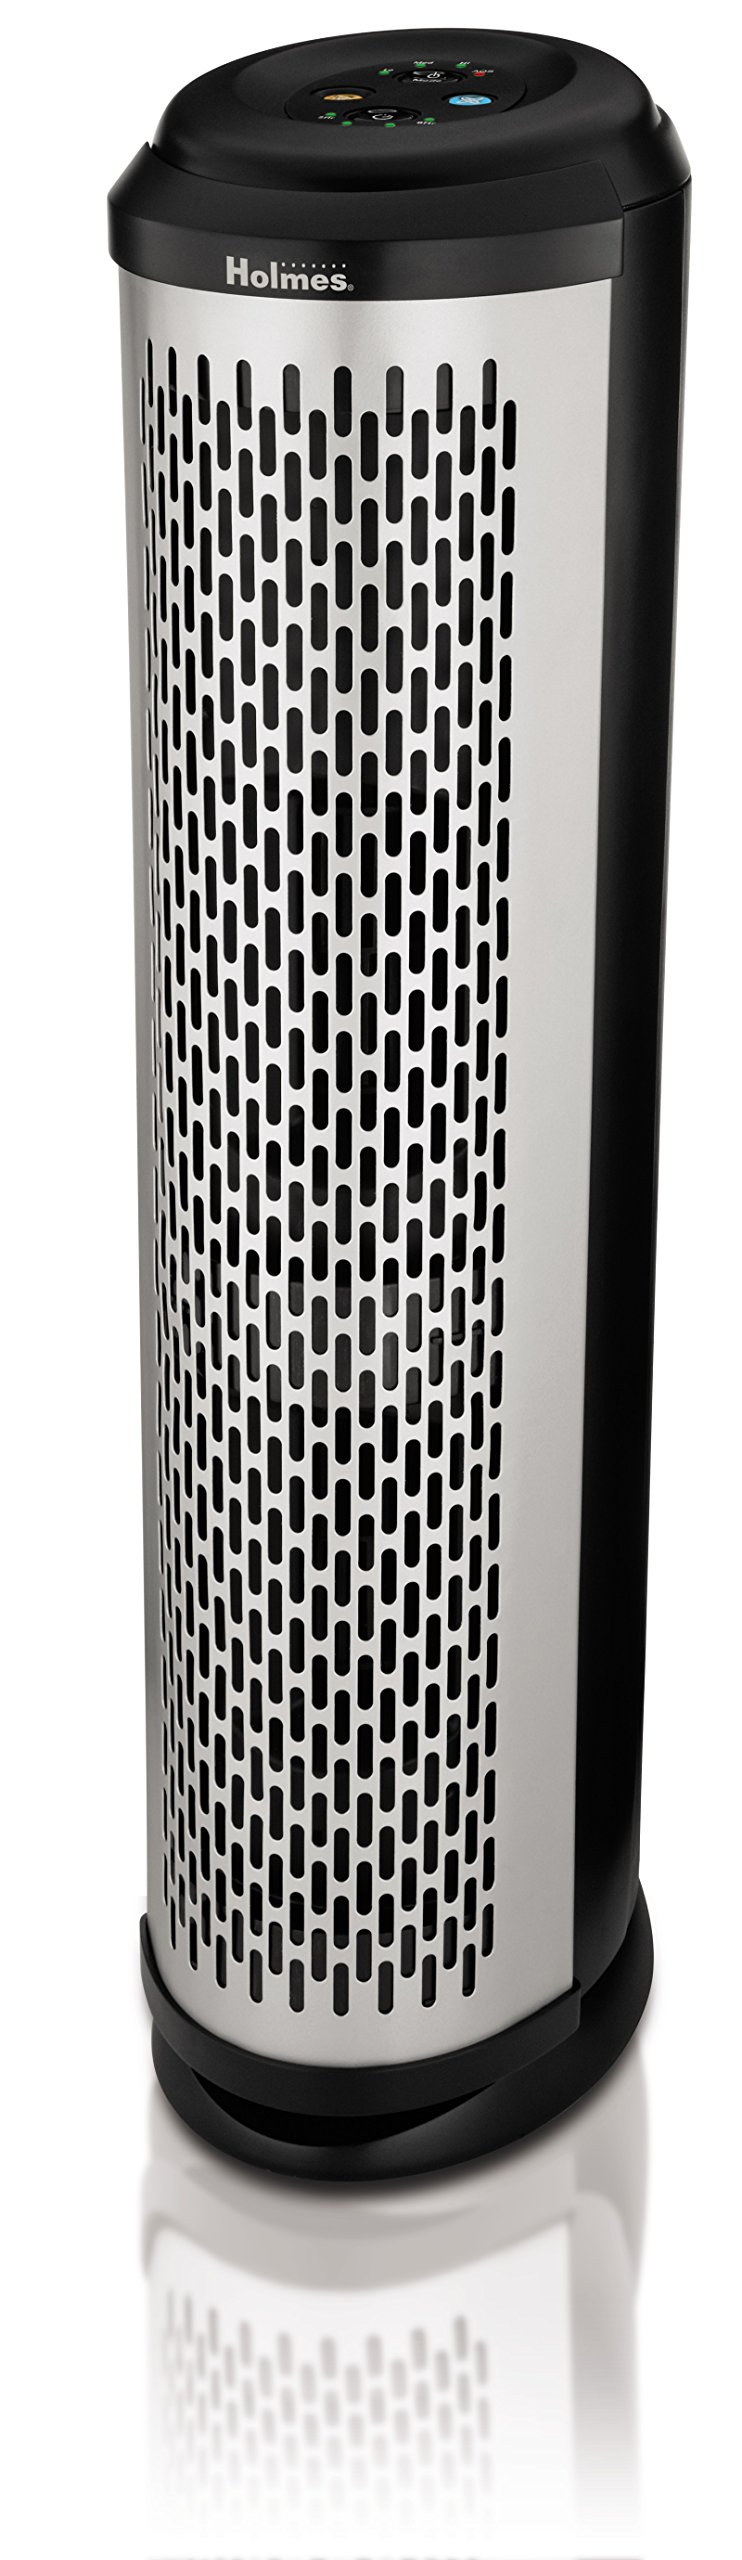 Holmes Allergen Remover Tower Air Purifier with True HEPA Filter, HAP1702-TU